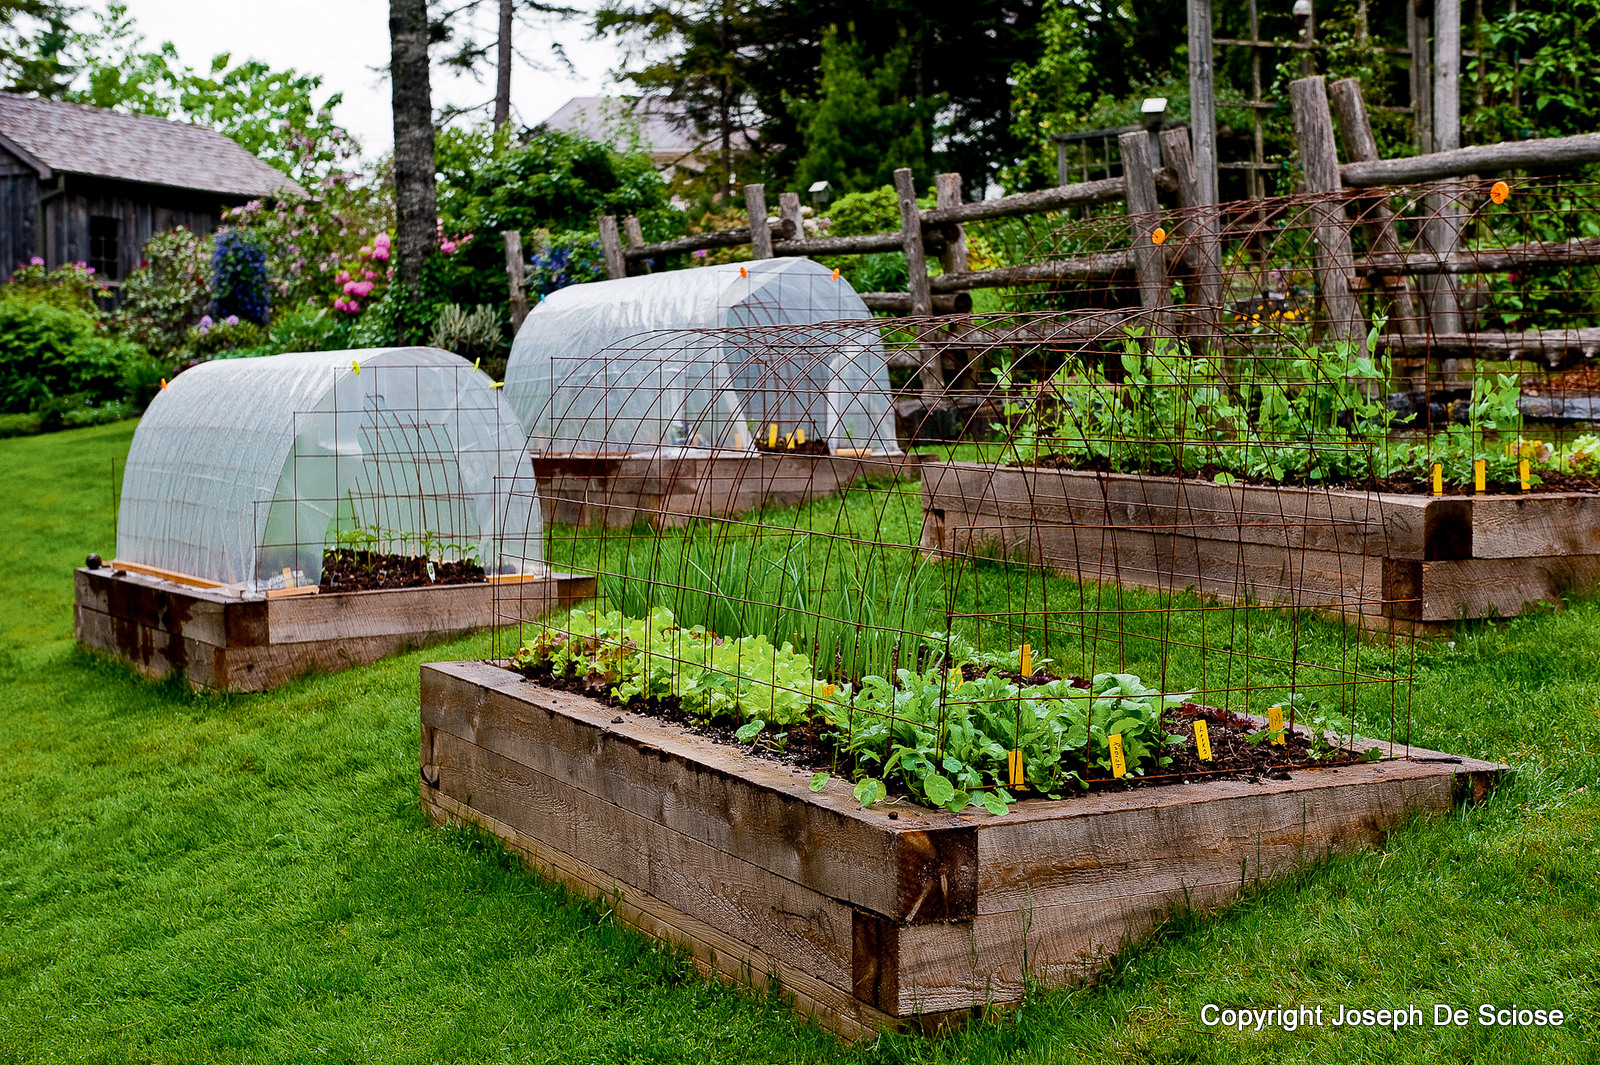 [Image: 1-Raised-Beds-1-of-1.jpg]